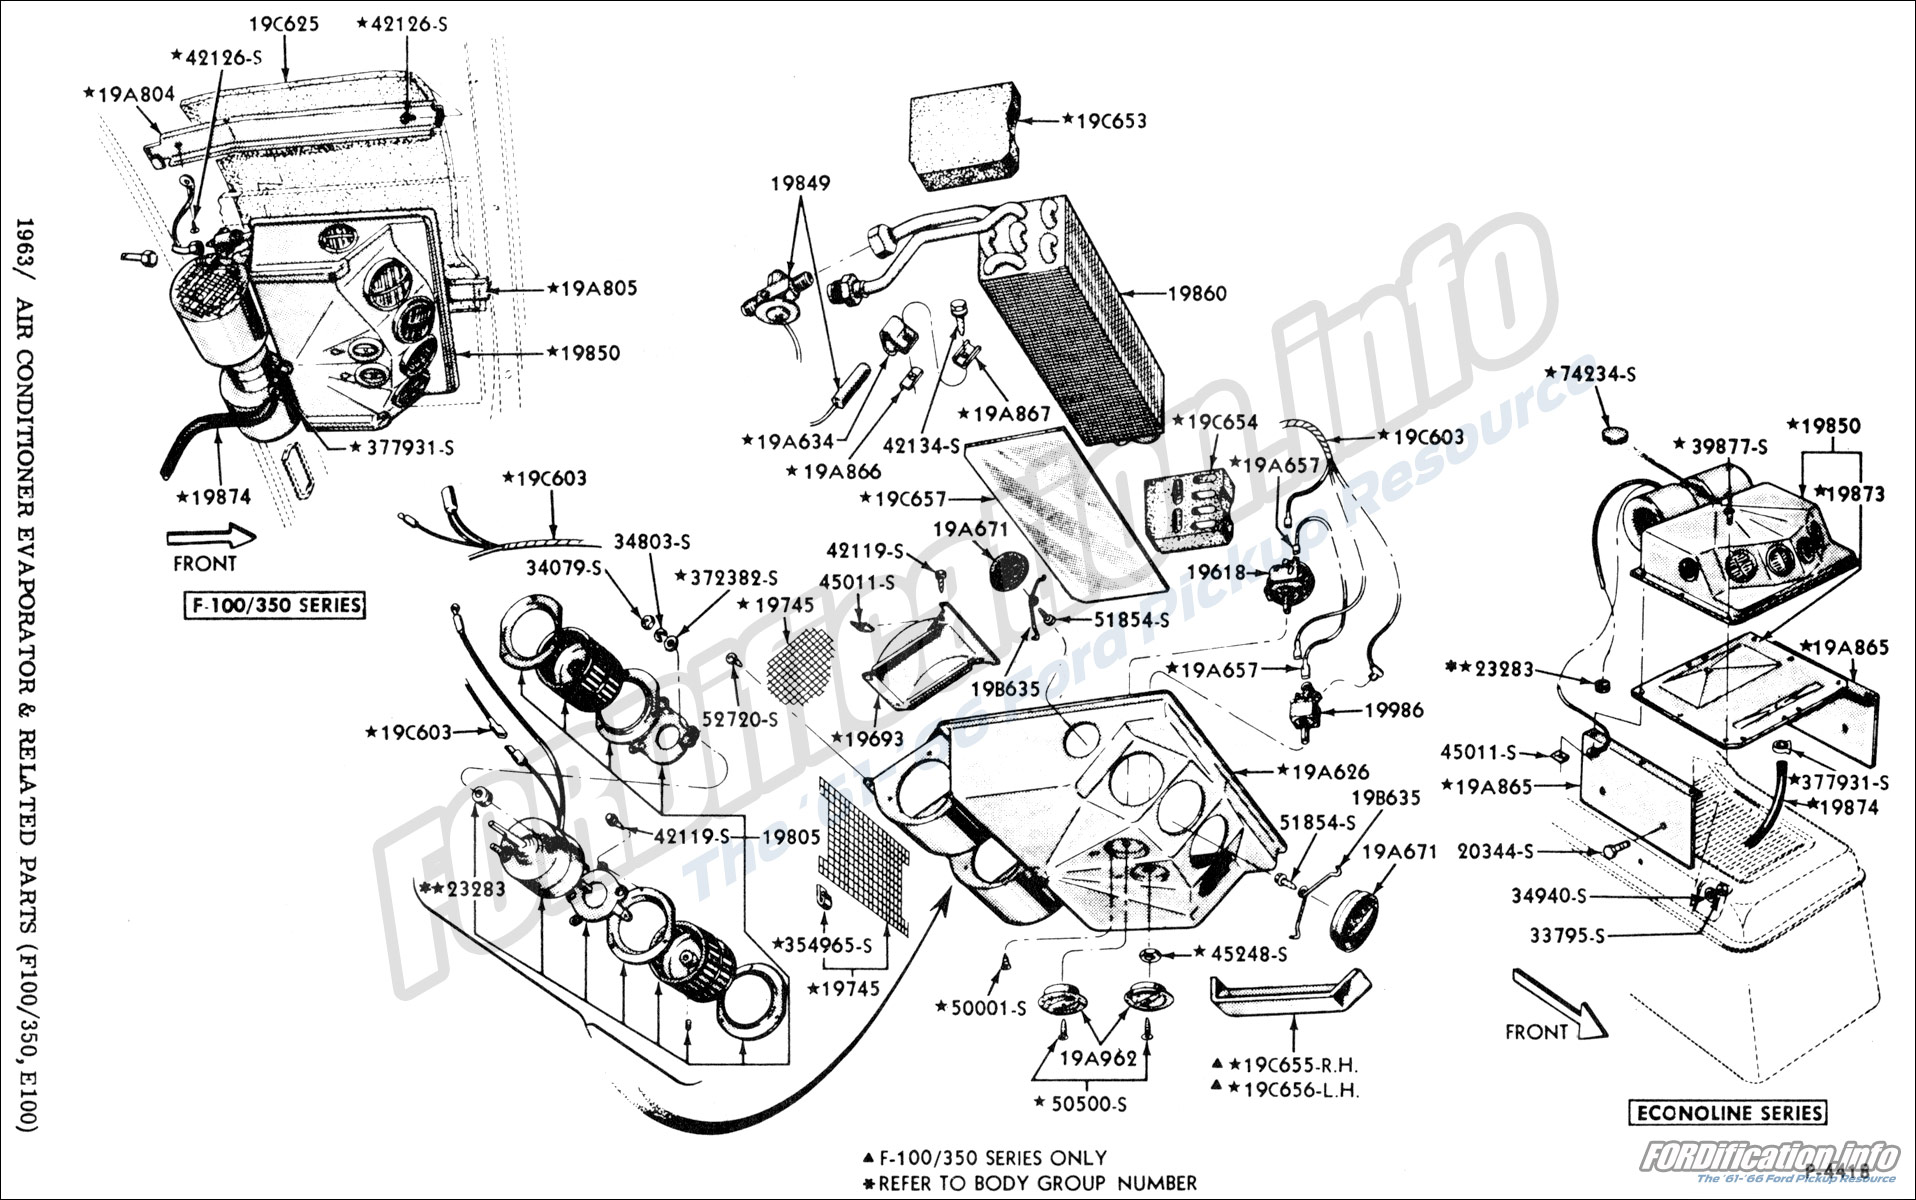 Heating Amp Cooling Schematics